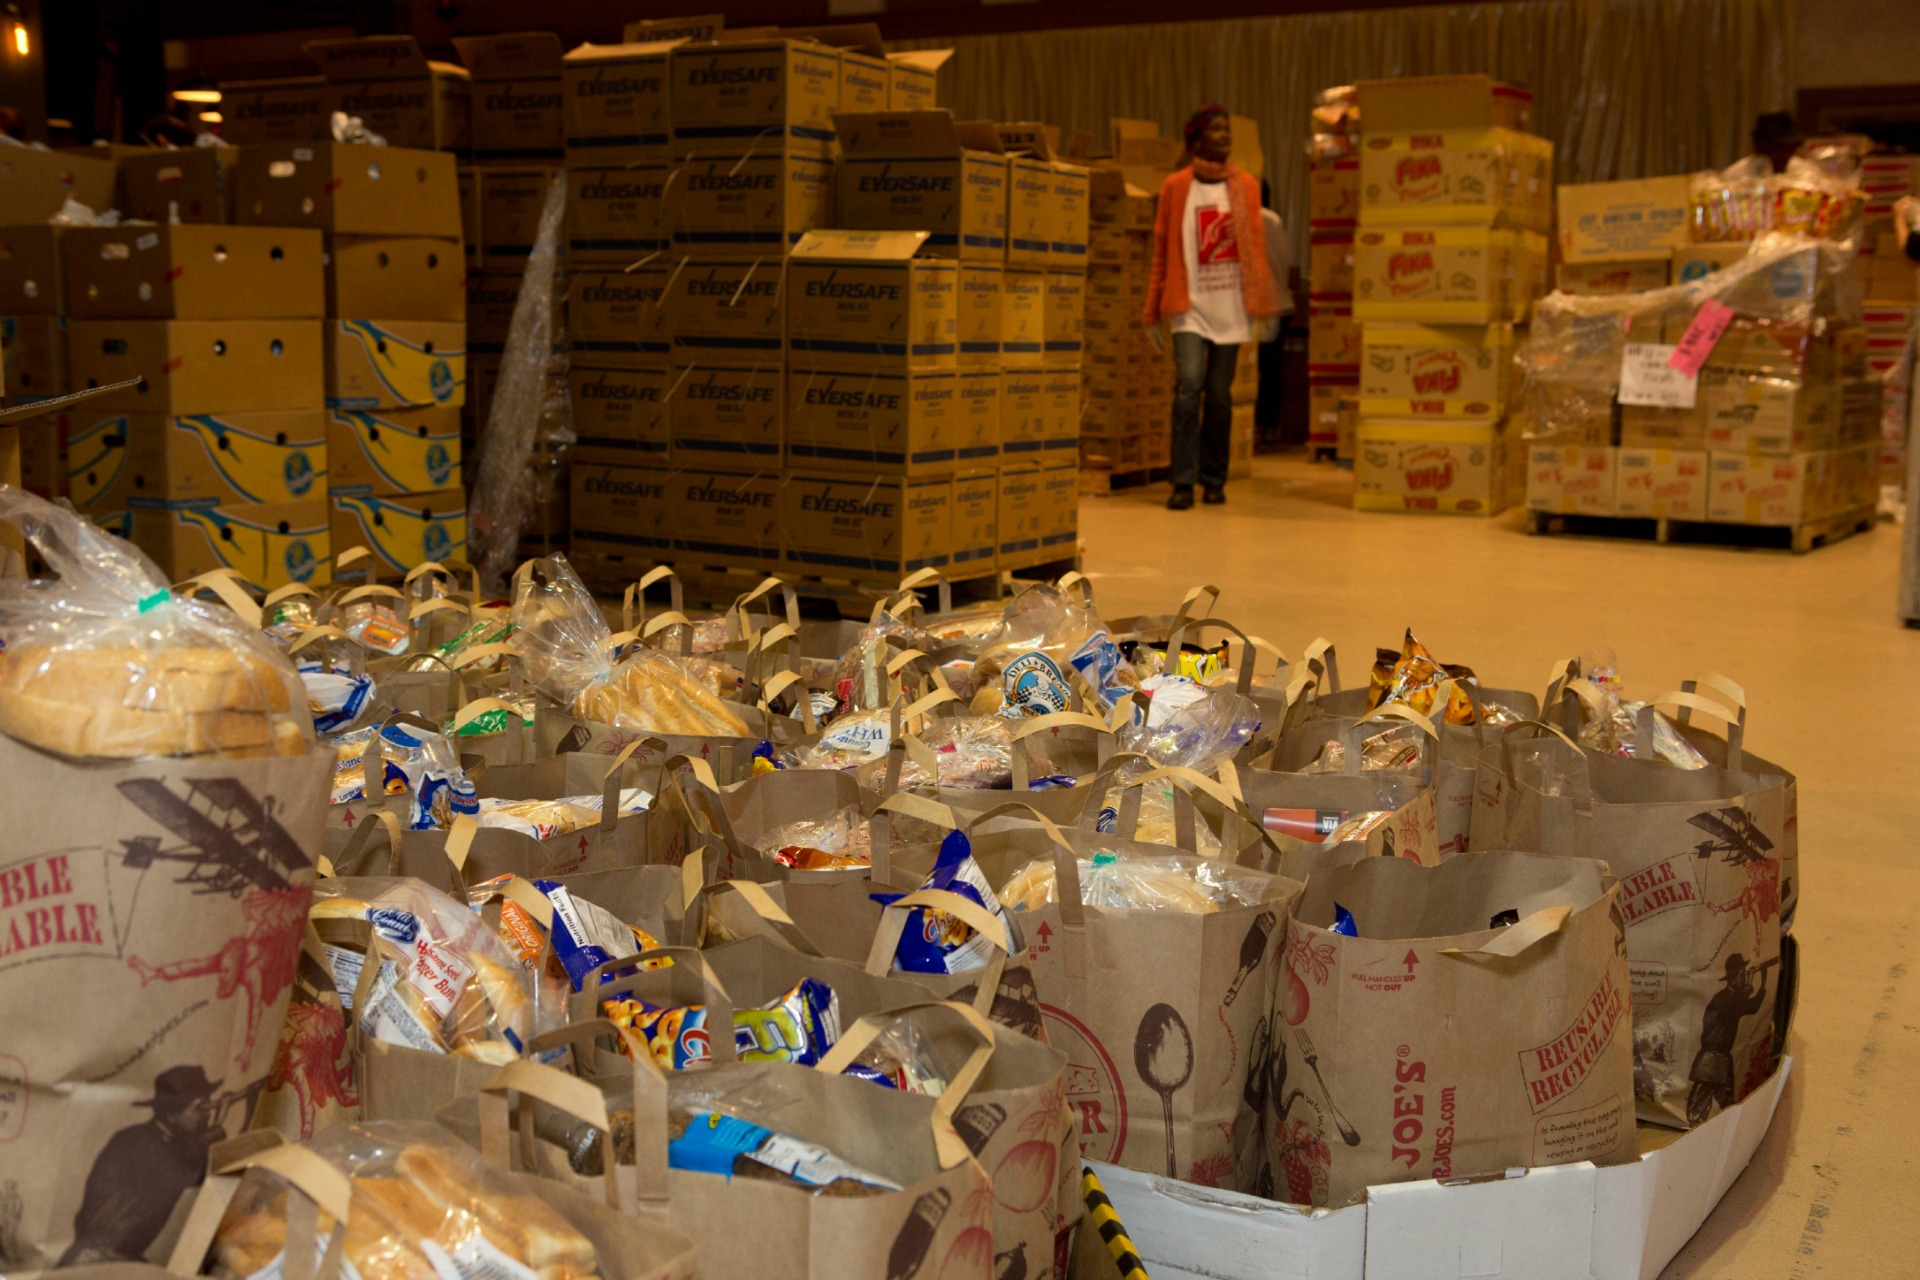 Volunteers prepare bags of food for a PHC event.